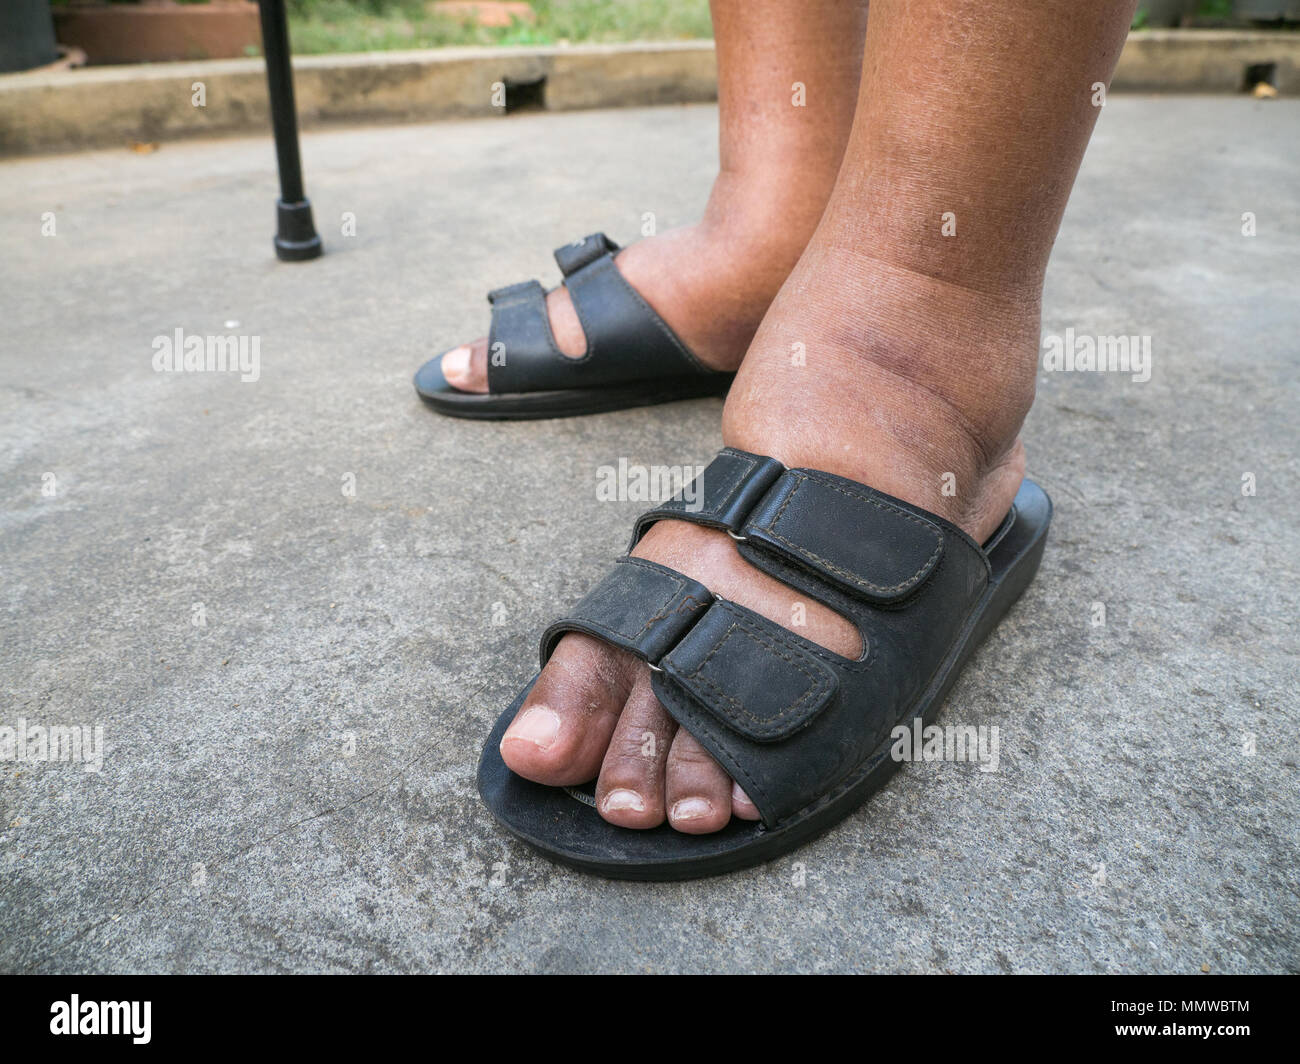 The Feet Of Man With Diabetes Dull And Swollen Due To The